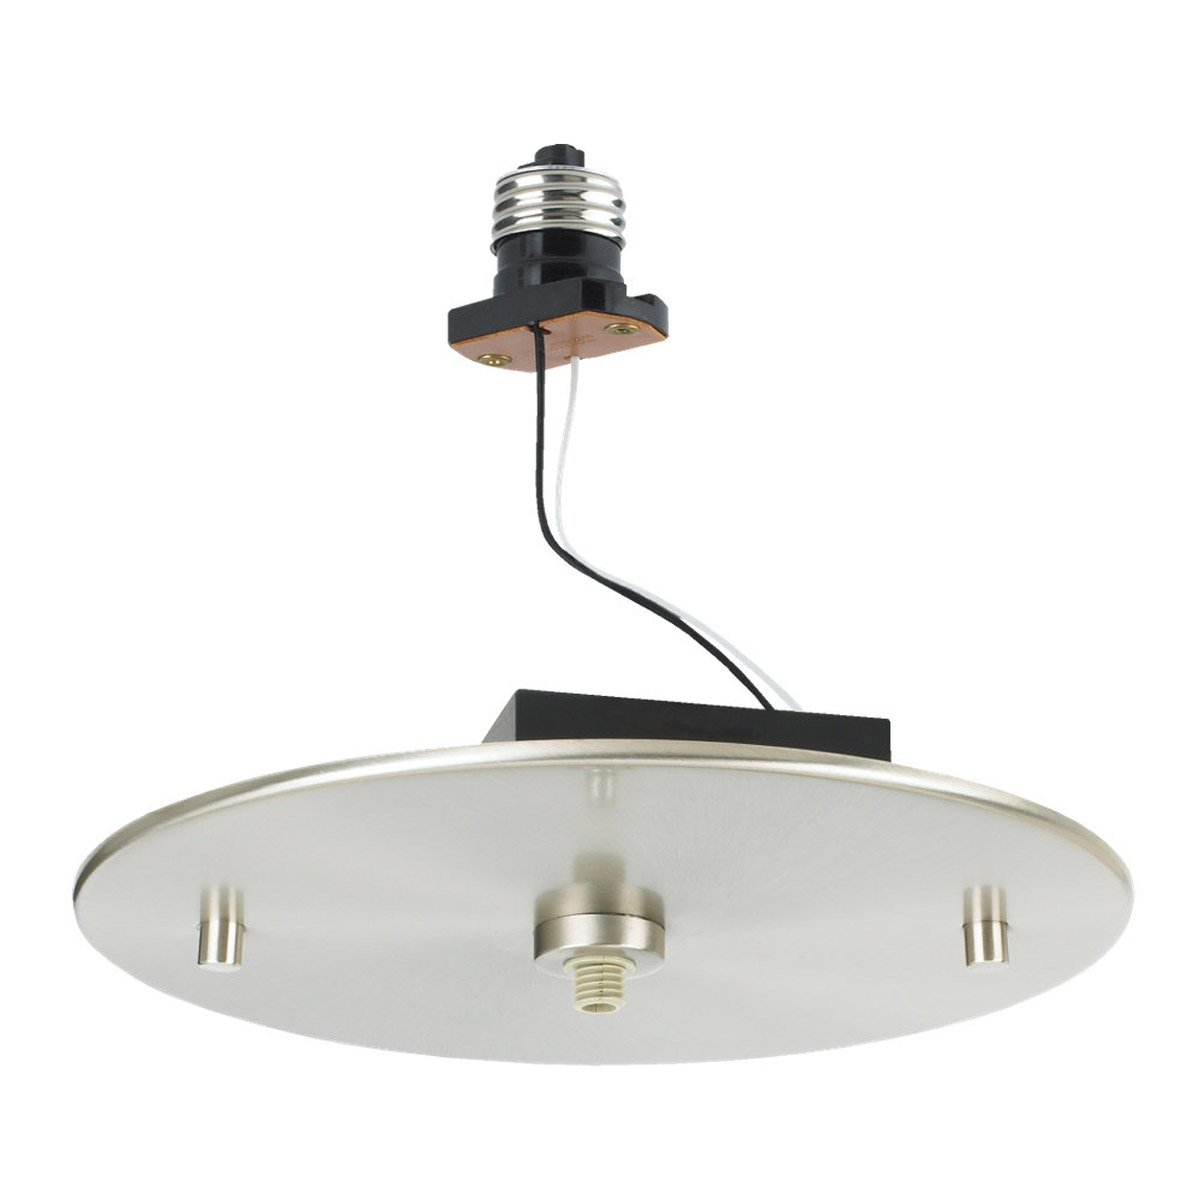 Sea Gull Lighting RTx Recessed Housing Mono-Point Adapter in Brushed Stainless 95351-98 photo